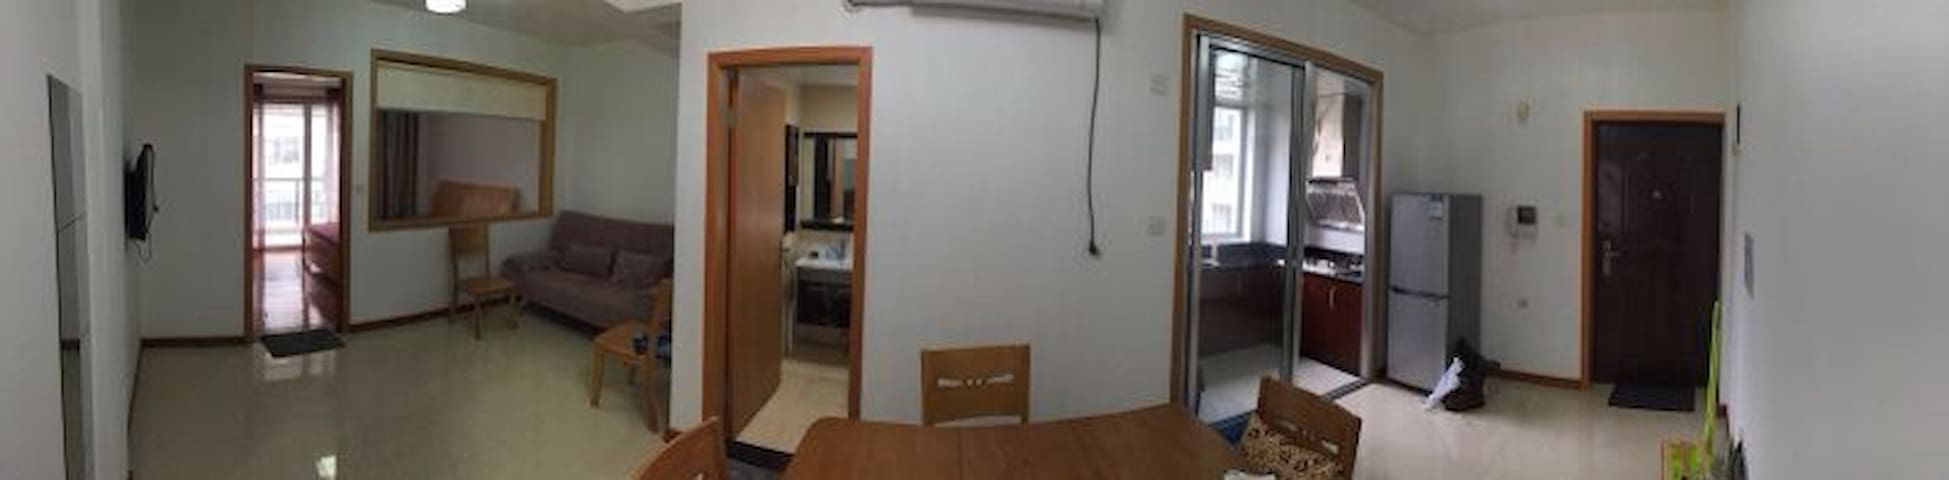 new flat!near Ling lake!quite and peaceful - Taizhou